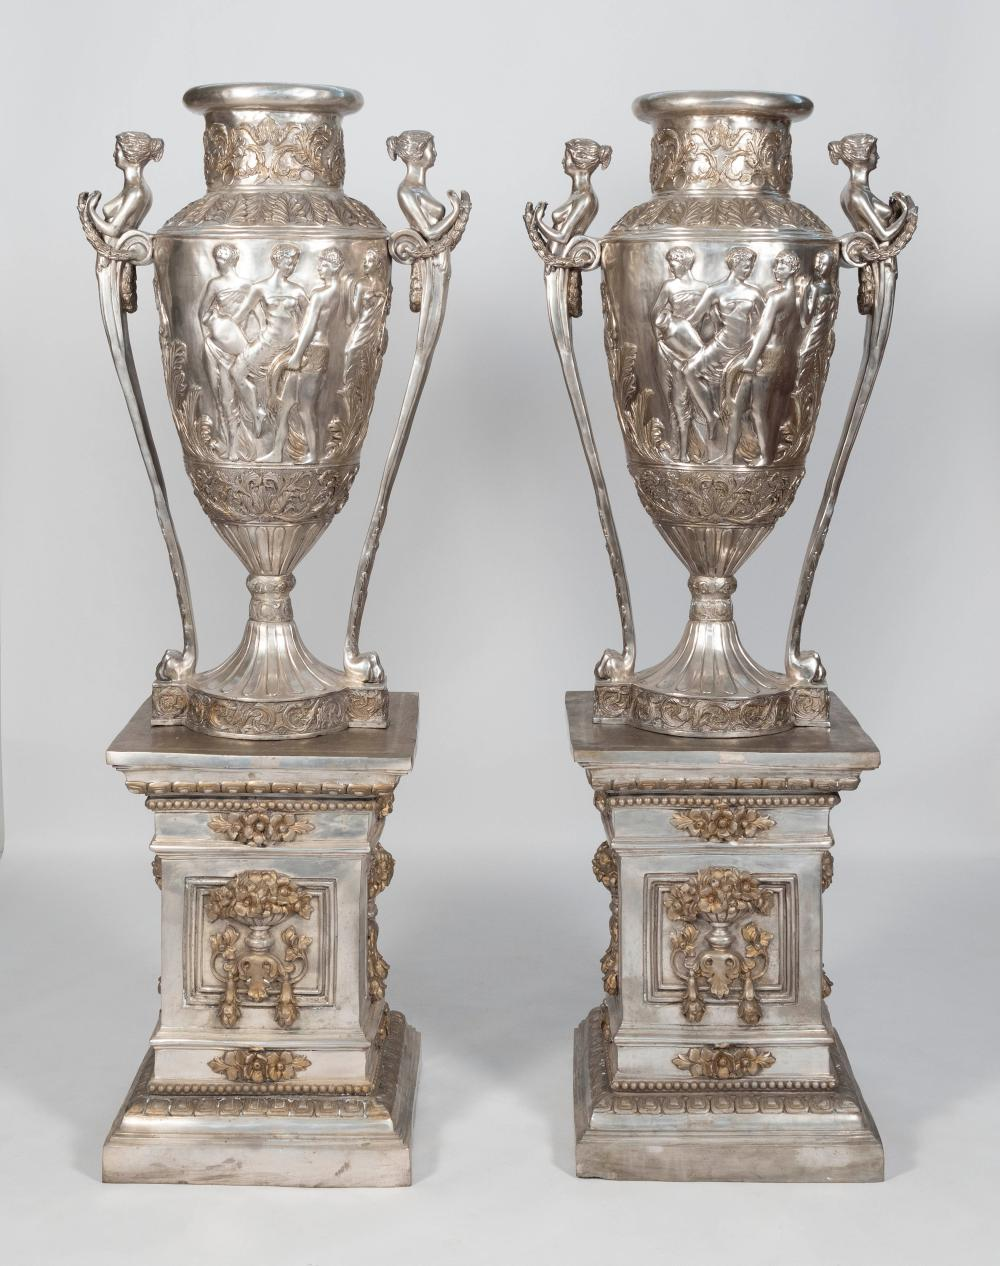 PAIR OF MONUMENTAL NEOCLASSICAL METAL URNS ON PEDESTALS The urns with scantily clad figures in relief and caryatid handles. Pedestal...